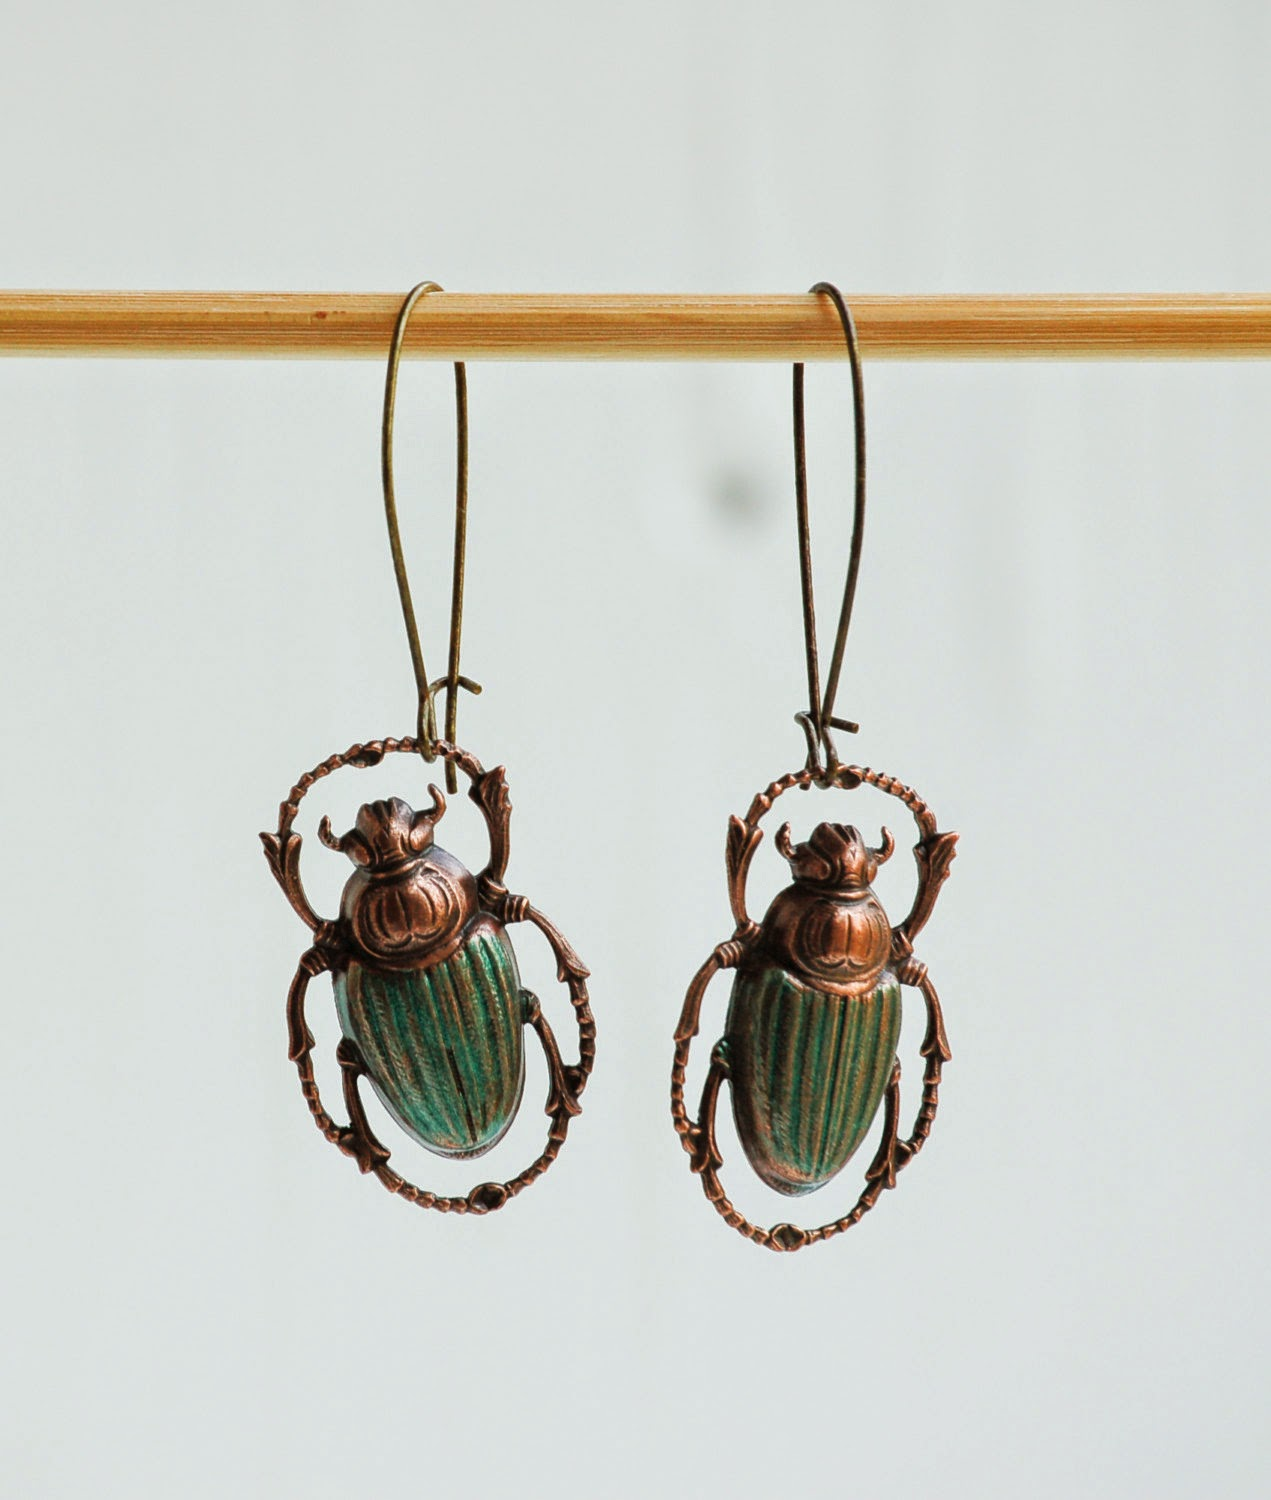 https://www.etsy.com/listing/199710893/steam-punk-green-beetle-earrings-nature?ref=shop_home_active_1&ga_search_query=beetle